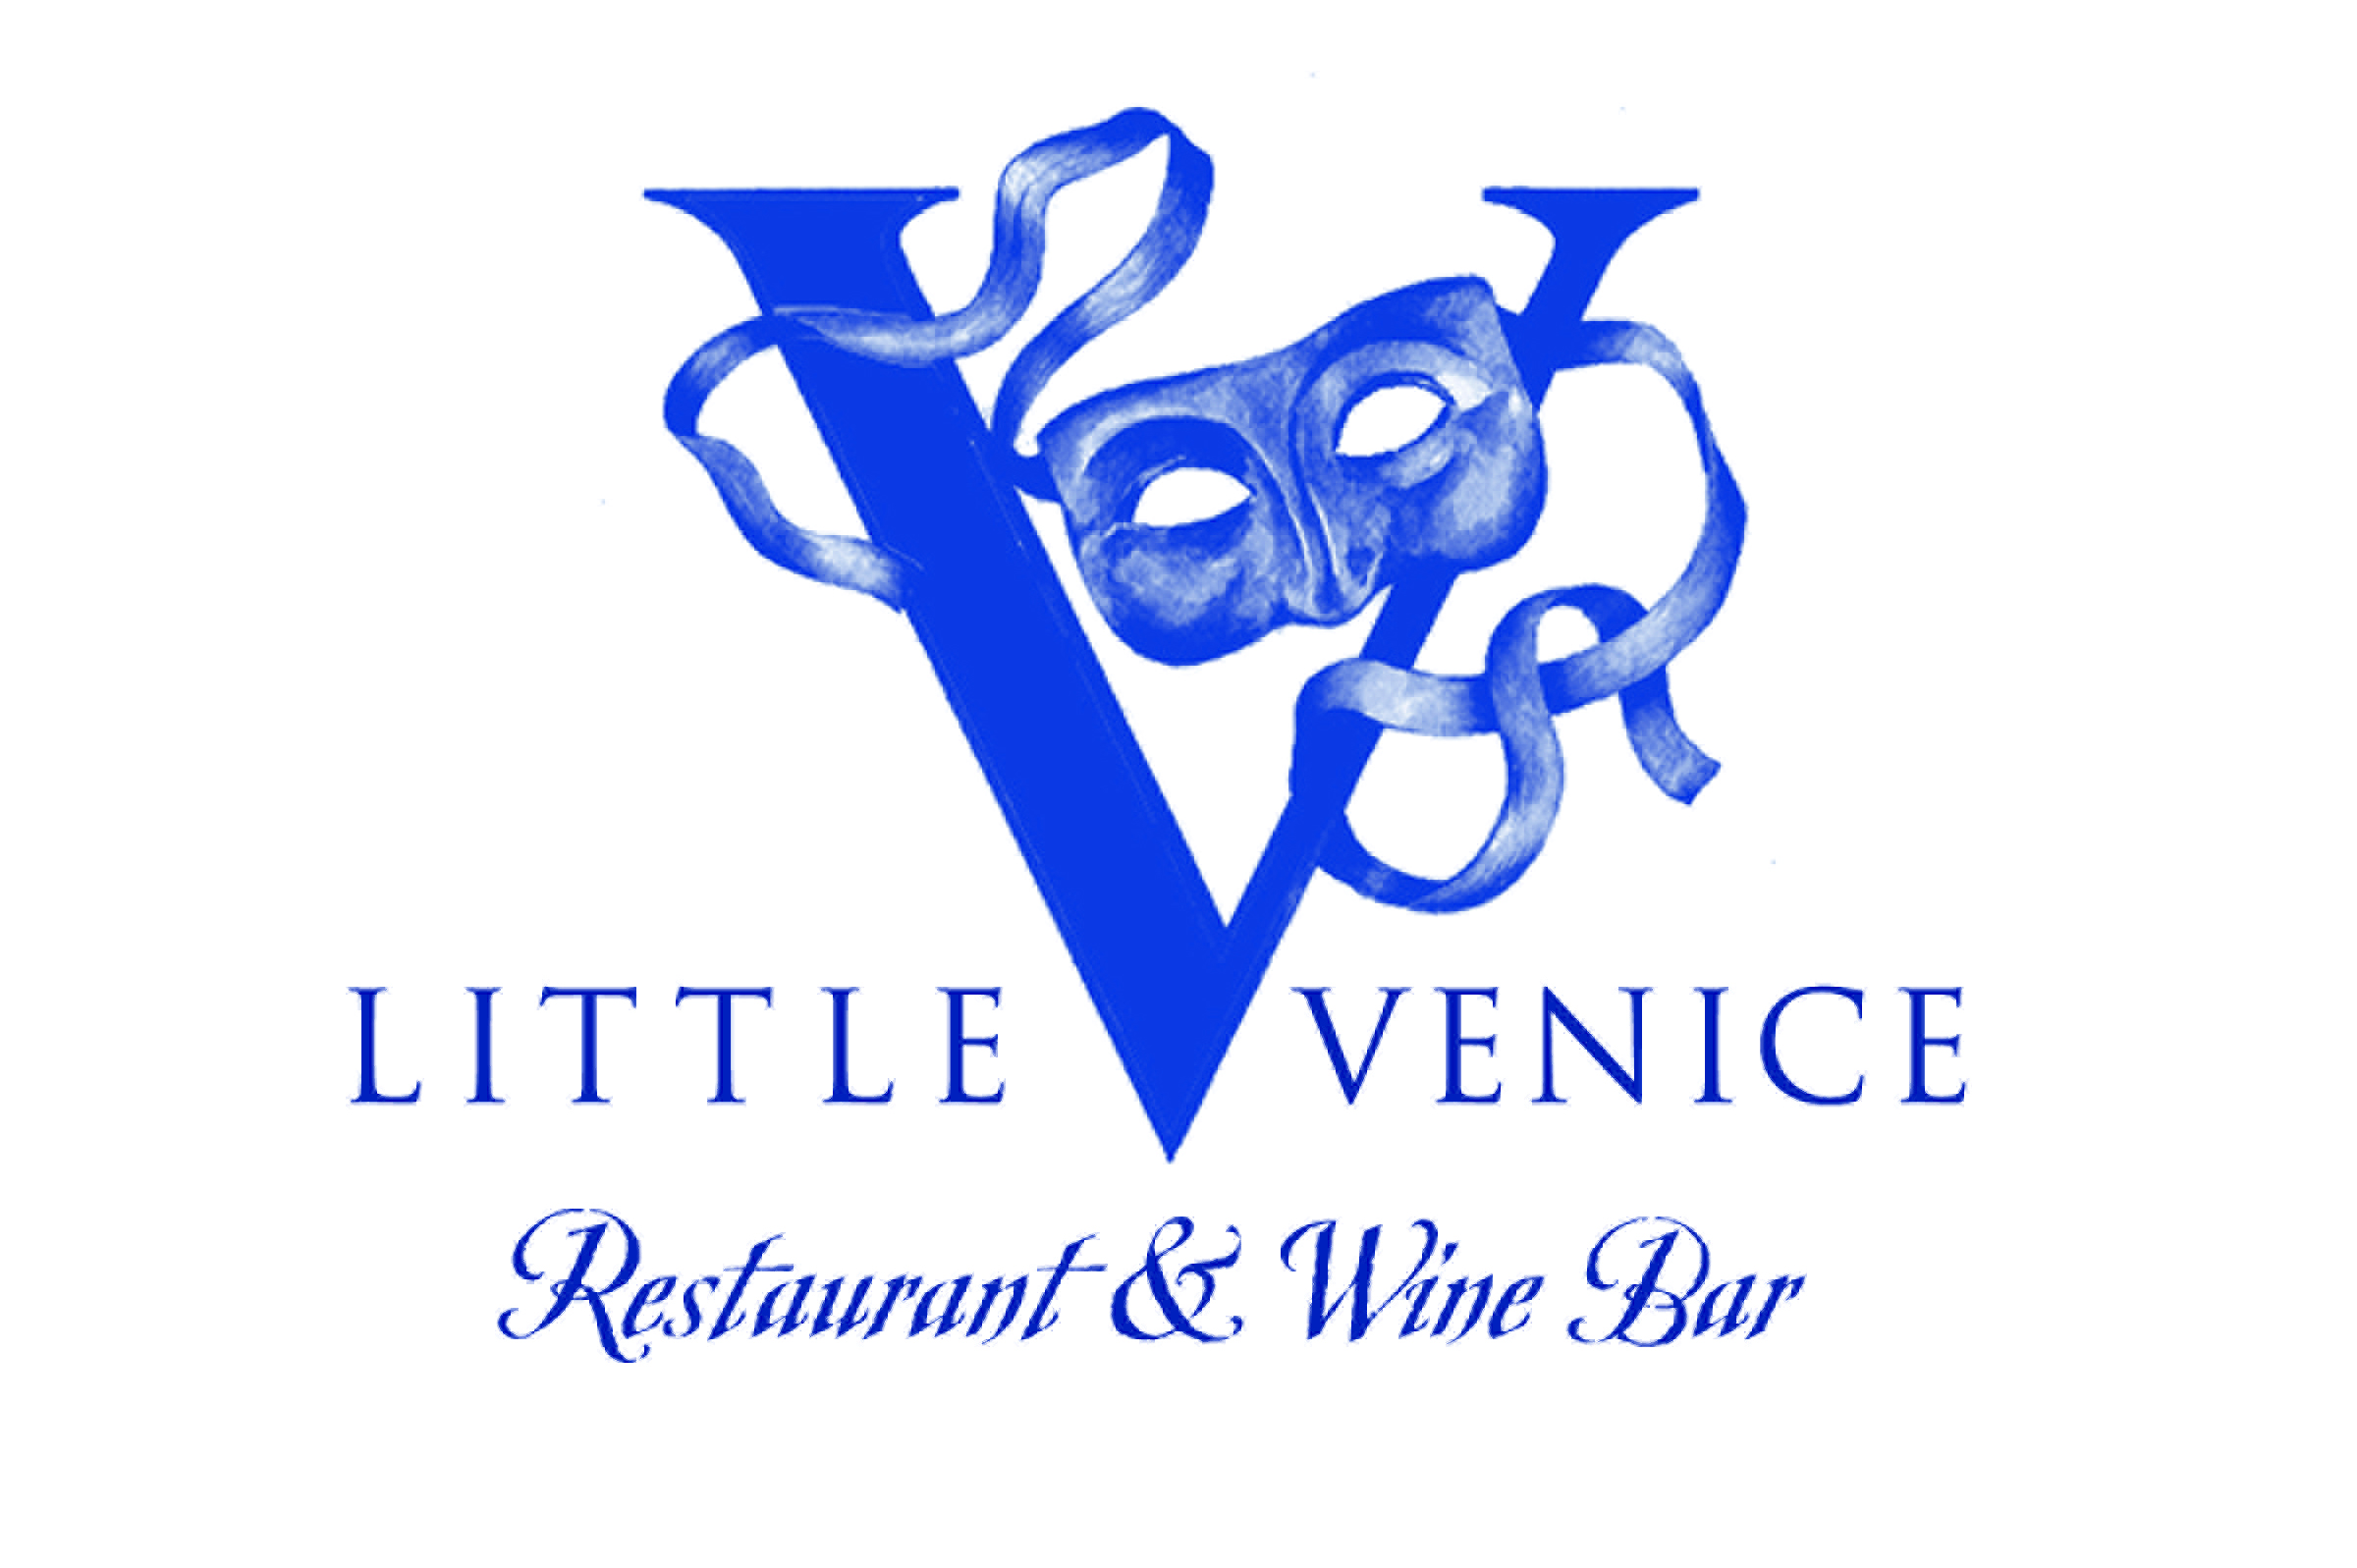 Little Venice Restaurant & Wine Bar logo.jpg